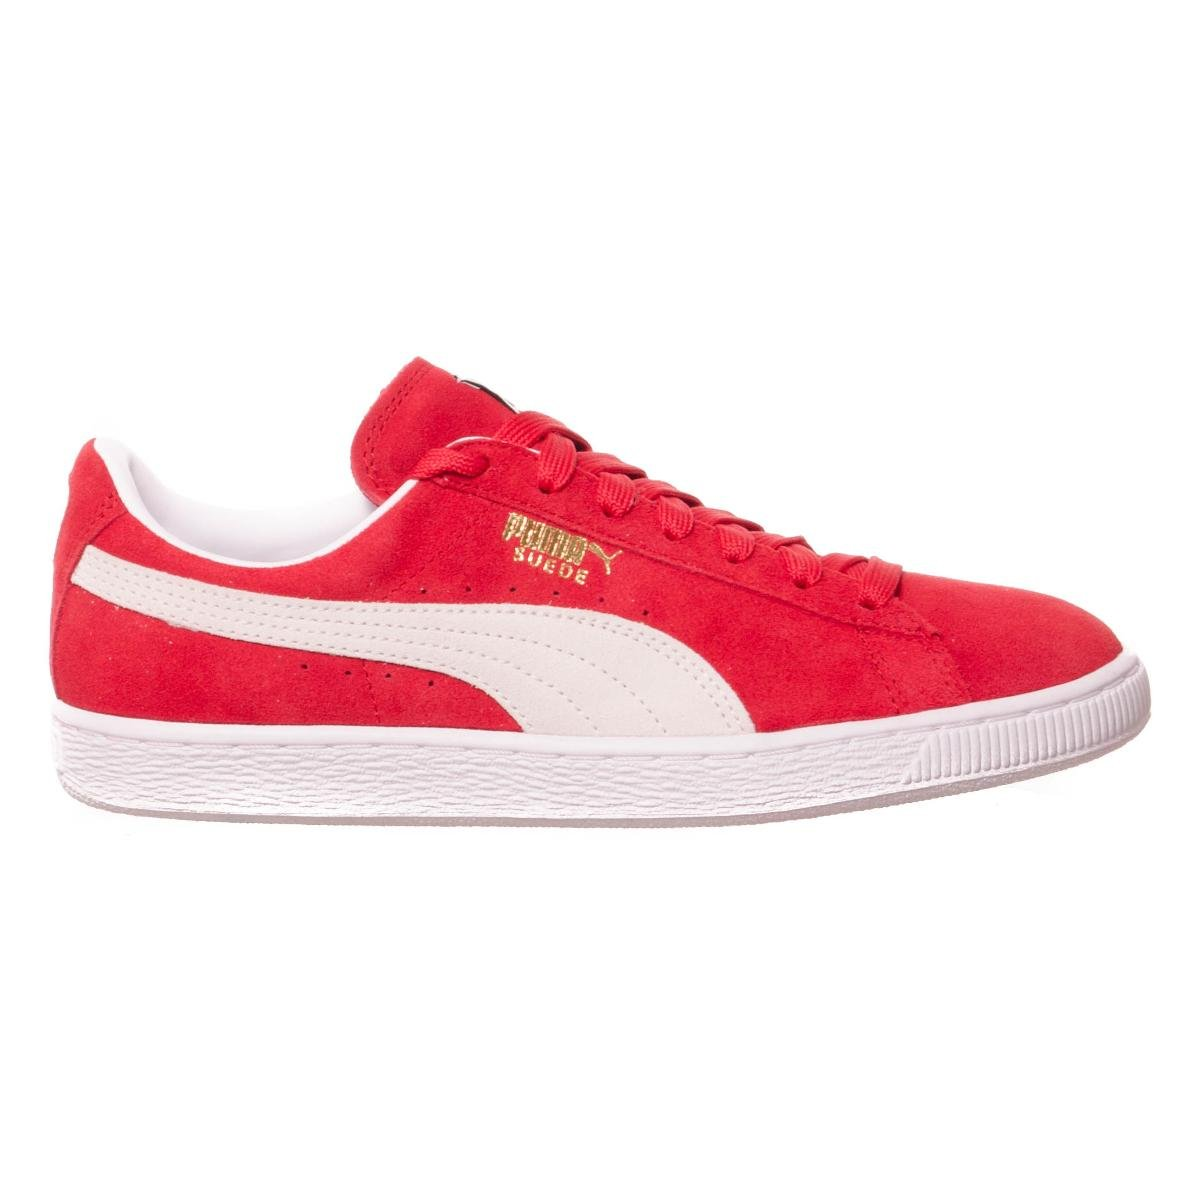 Puma Suede Classic+, Herren High-Top Sneaker  44.5 EU|High Risk Red